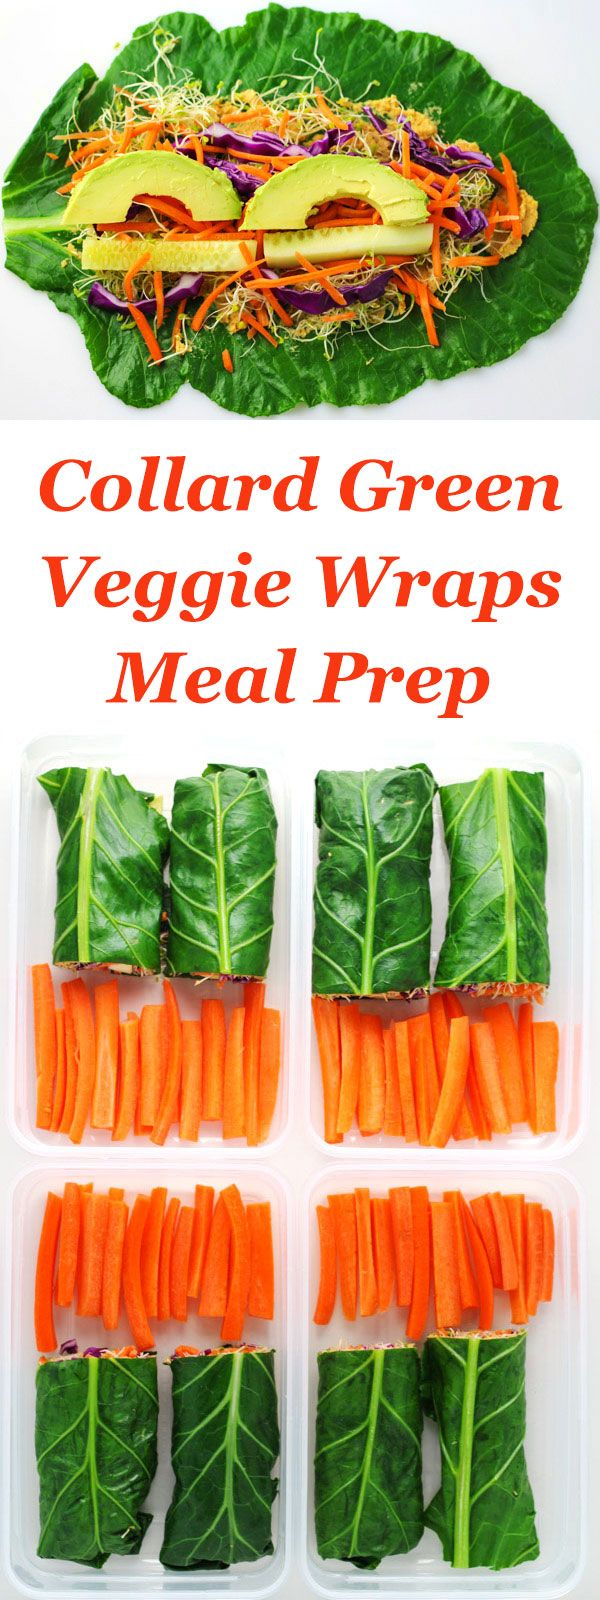 Collard Green Veggie Wraps Meal Prep ~ Make ahead Healthy, Low Carb, Gluten Free lunches for the week!